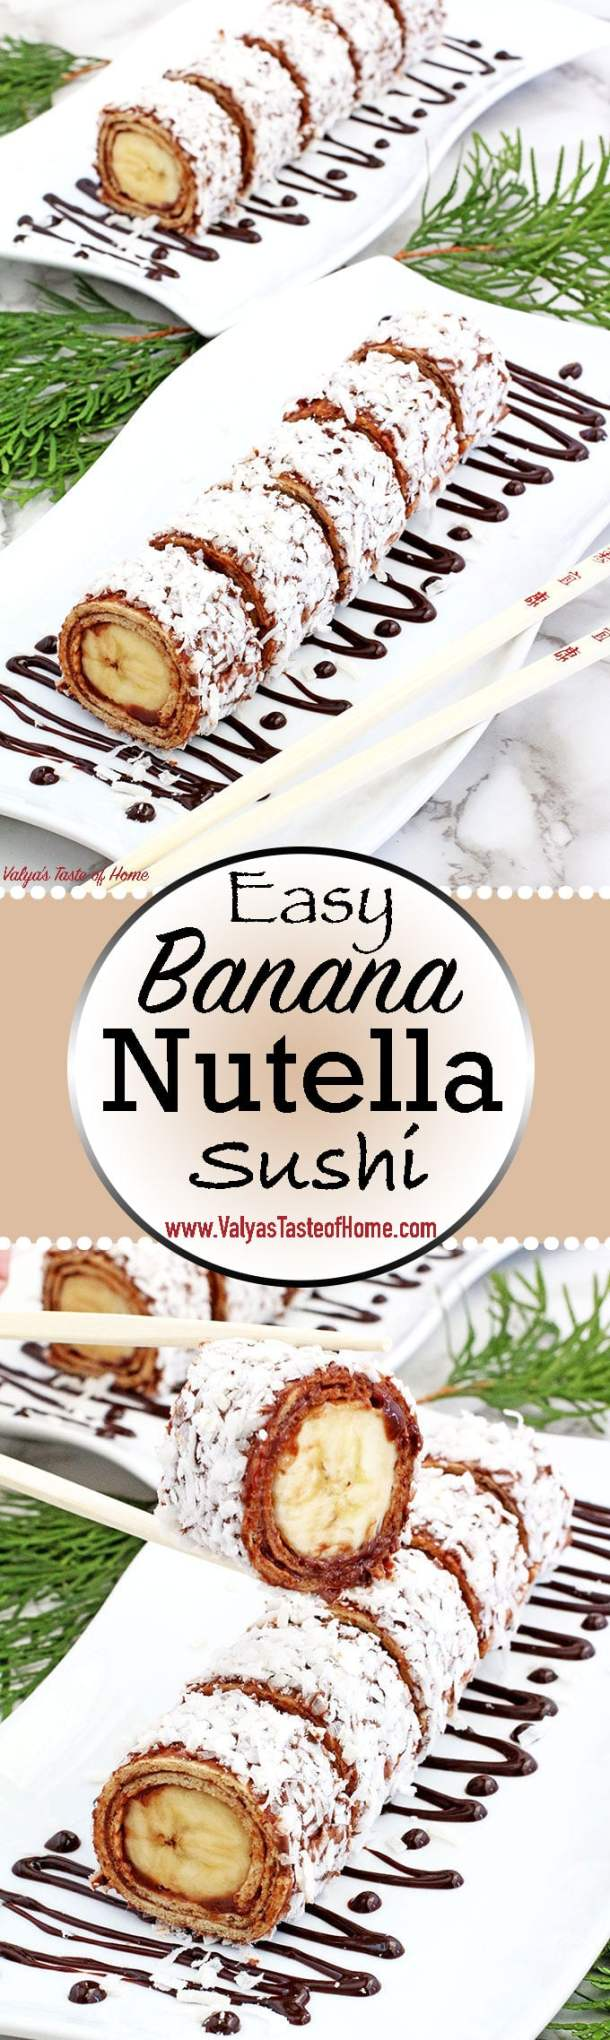 What can be better than sushi? Dessert sushi, folks! This Easy Banana Nutella Sushi Rolls require no baking and comes together in no time! A banana rolled in a honey tortilla, spread with Nutella, coated with coconut shaving make the best snack, and you've got an irresistibly legit pleaser on your hands. Sushi's better half!